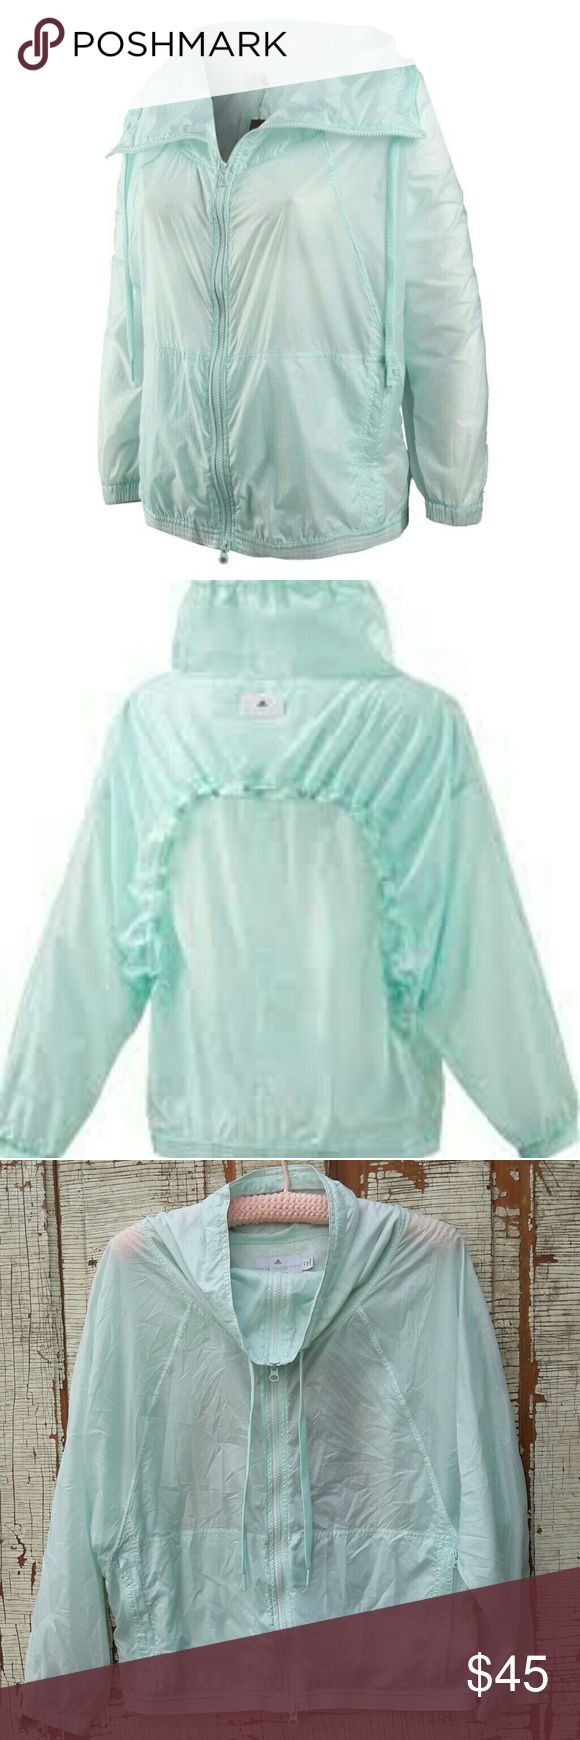 "Adidas Stella McCartney Barricade workout jacket Stella McCartney Adidas barricade workout windbreaker jacket. Sheer/aqua color.  Zippered pockets and drawstring neck with dolman sleeves  Shoulders- 20"" Bust-25"" Length- 23"" Arm Inseam-19"" Adidas by Stella McCartney Jackets & Coats"